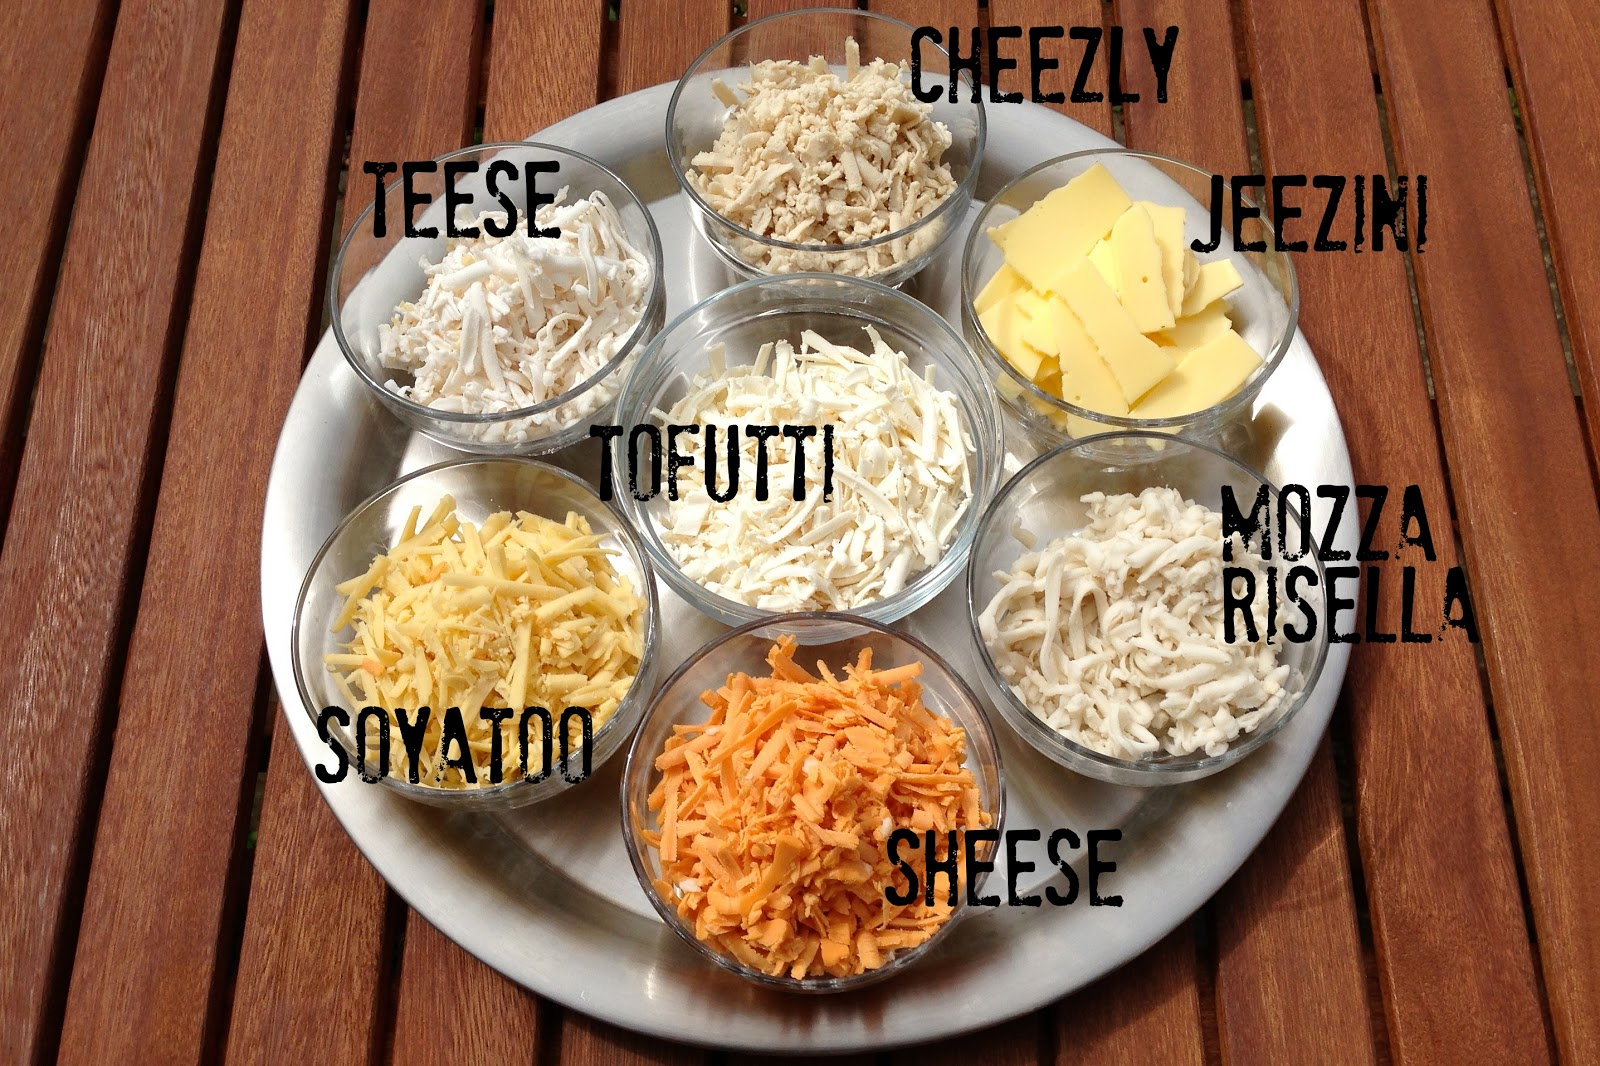 20130507-cheese-meltdown-taste-test-2a-plate1.jpg